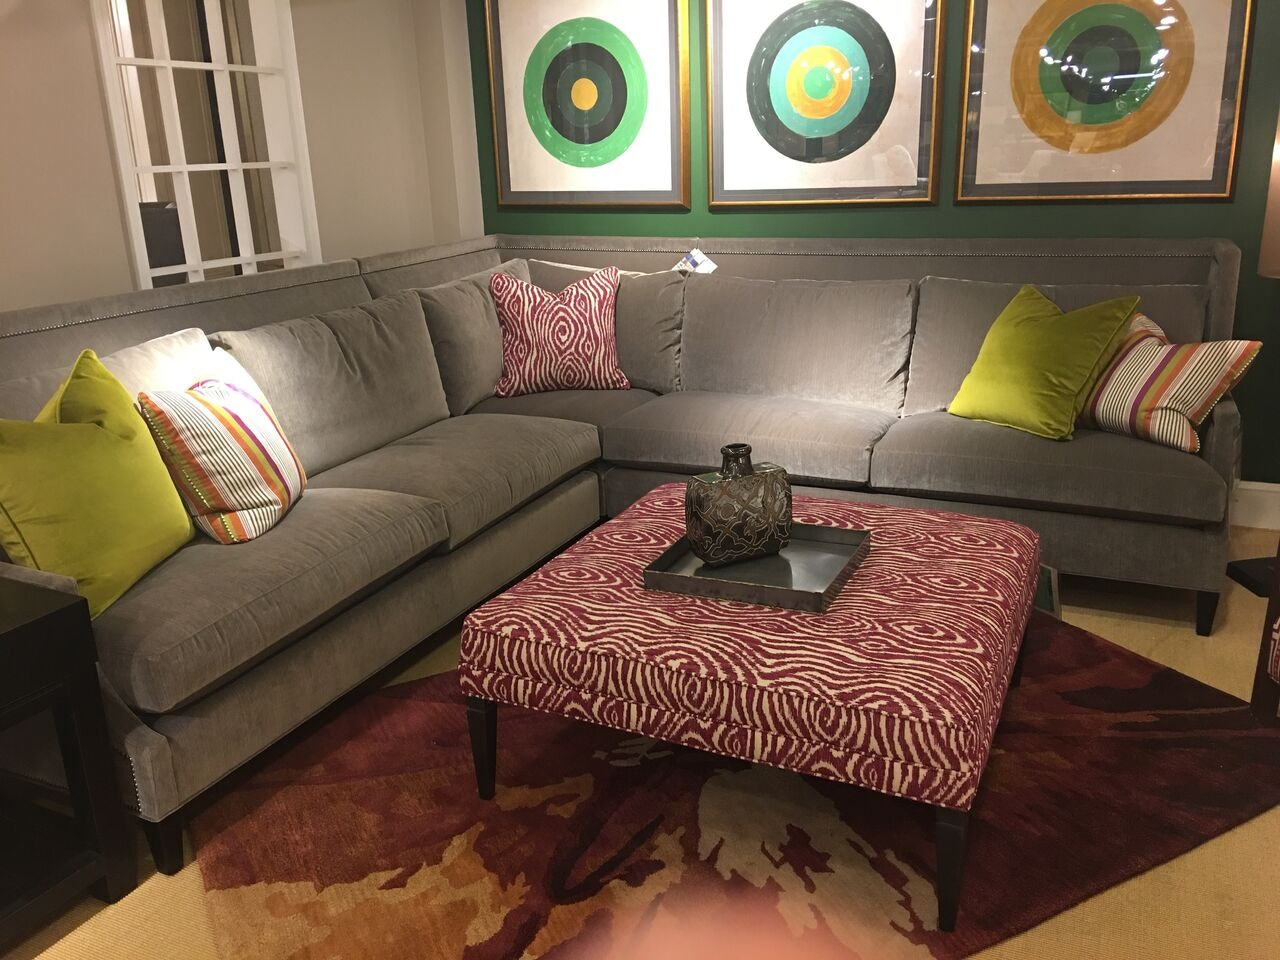 Excellent Sofa Outlet Sofa Sofa Sofa Outlet Los Angeles On A Budget On Sofa Outlet Ottoman Bycr Laine L Hickory Park Furniture Outlet Garrison Sectional houzz-02 Hickory Park Furniture